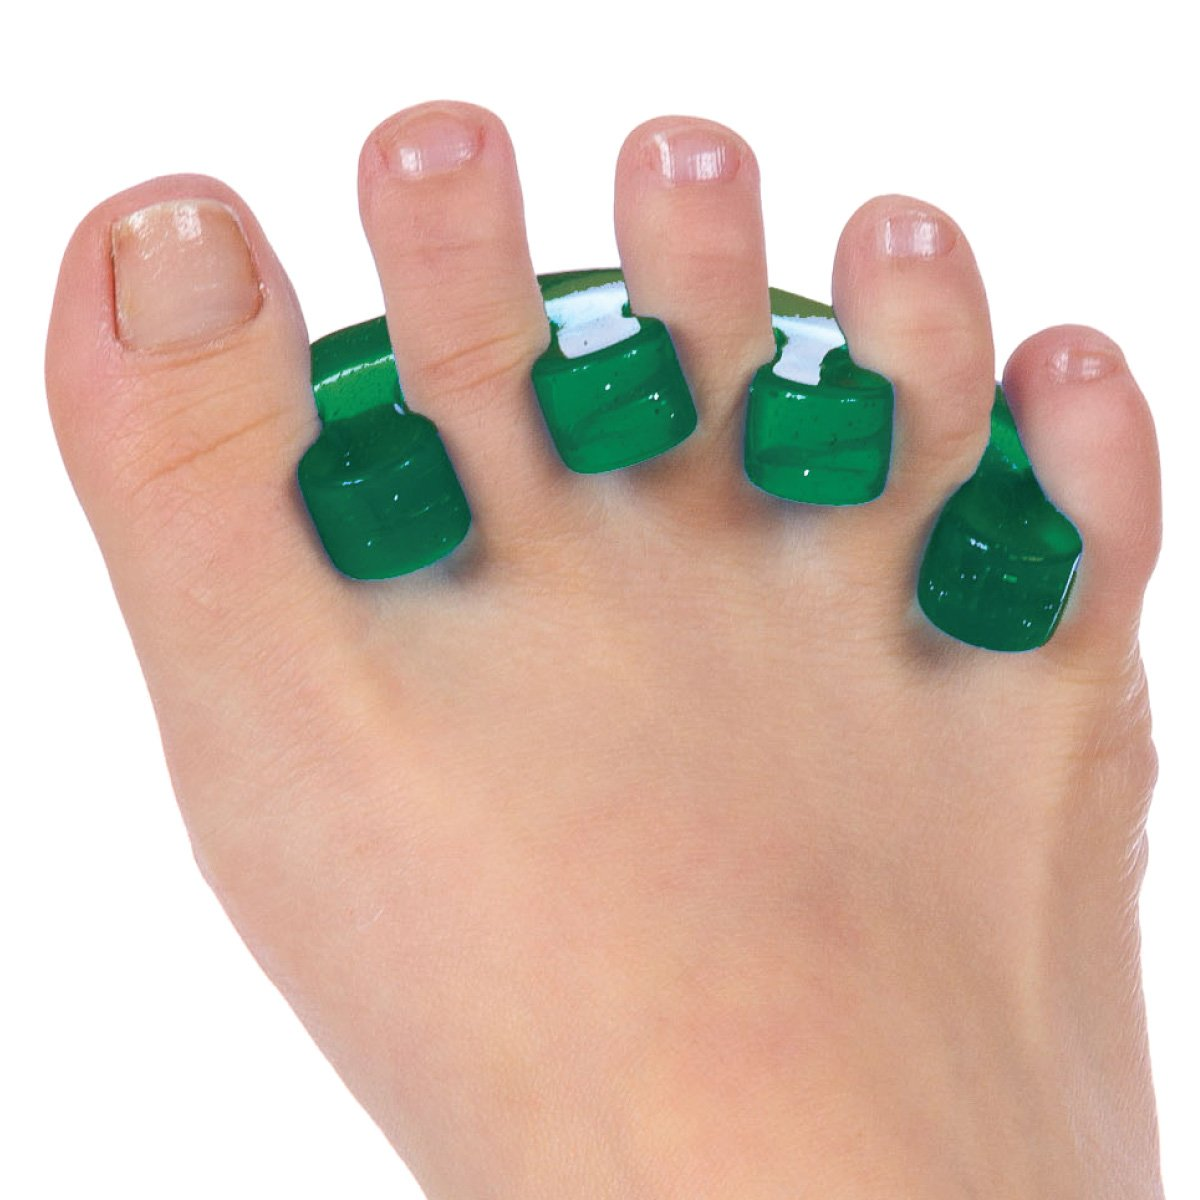 Happy Toes Gel Toe Separators Stretchers and Straighteners for Foot Pain & Bunion Relief, Hammer Toes and More - 1 Pair, (Emerald Sparkle)